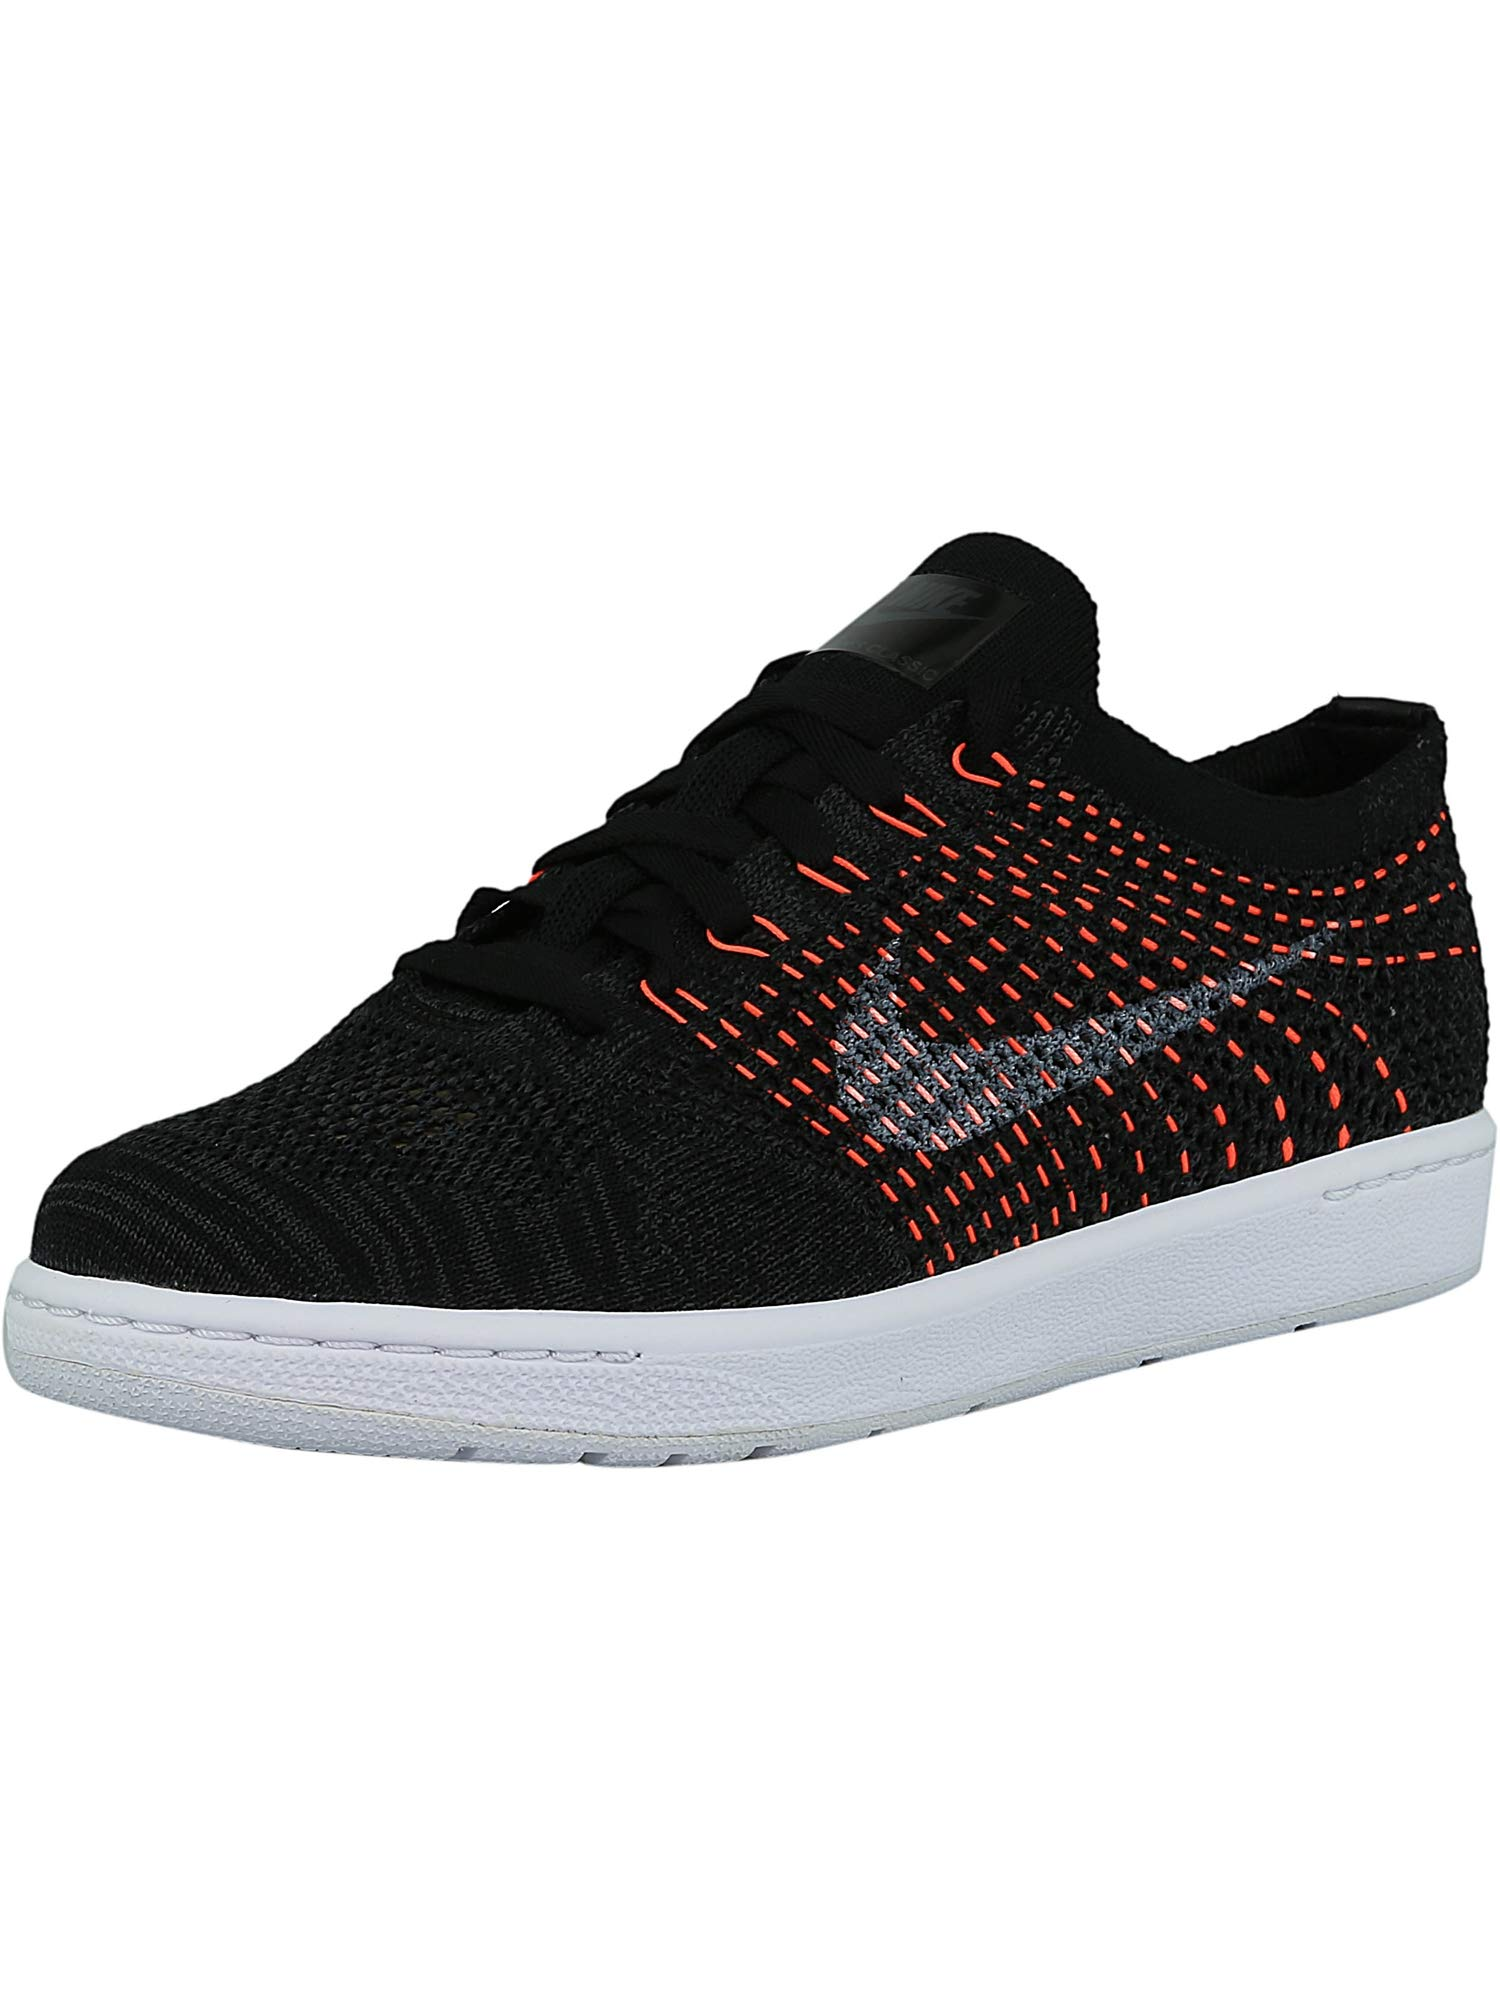 hot sales pick up biggest discount Nike Women's Tennis Classic Ultra Flyknit Black/White-Anthracite ...